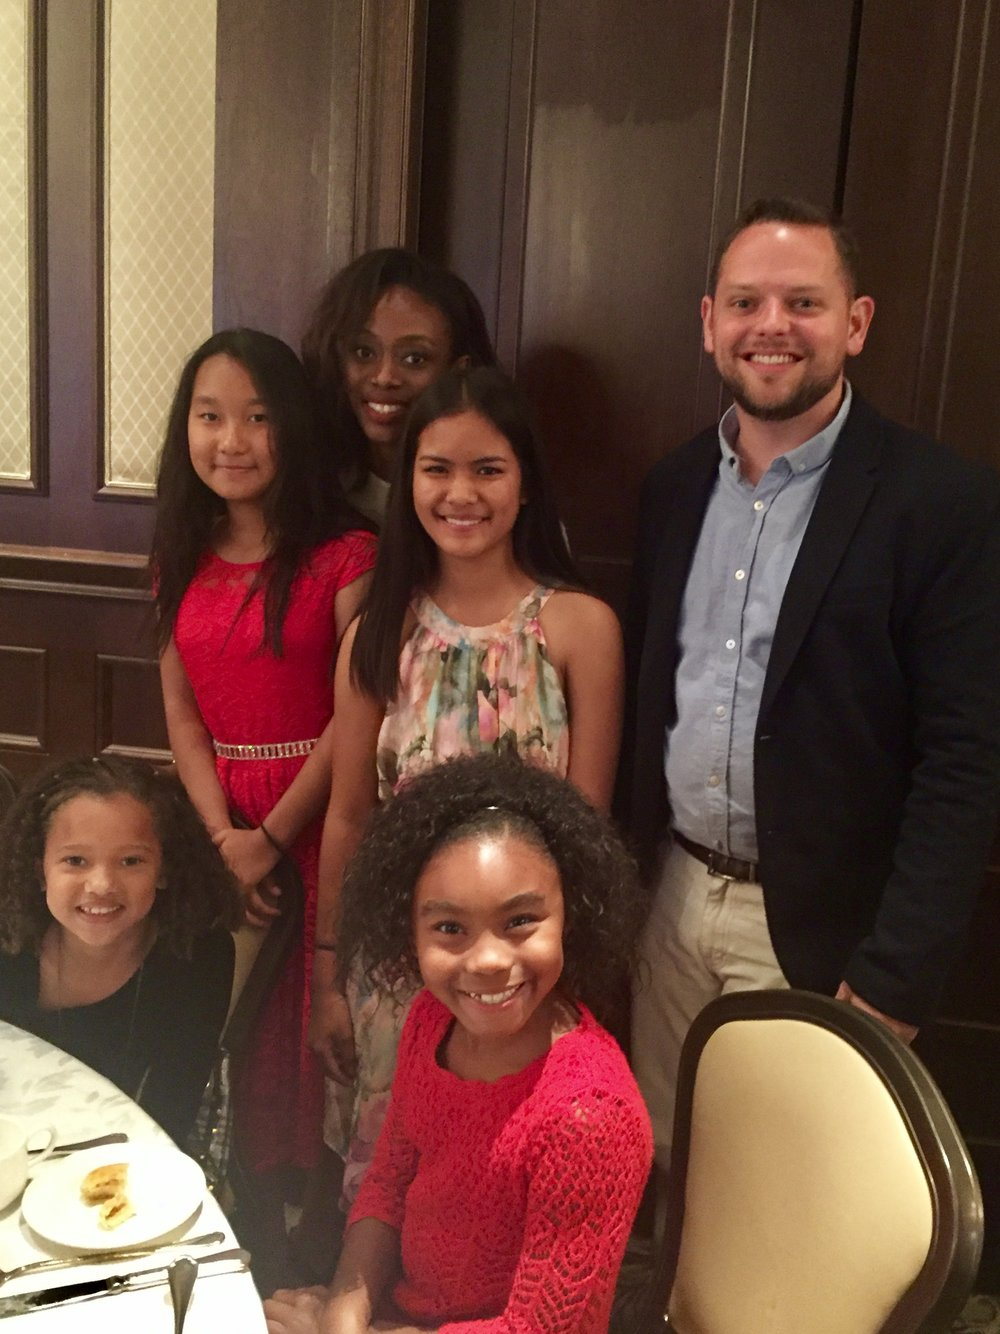 Picture of the cast at the luncheon! These girls had so much fun!!